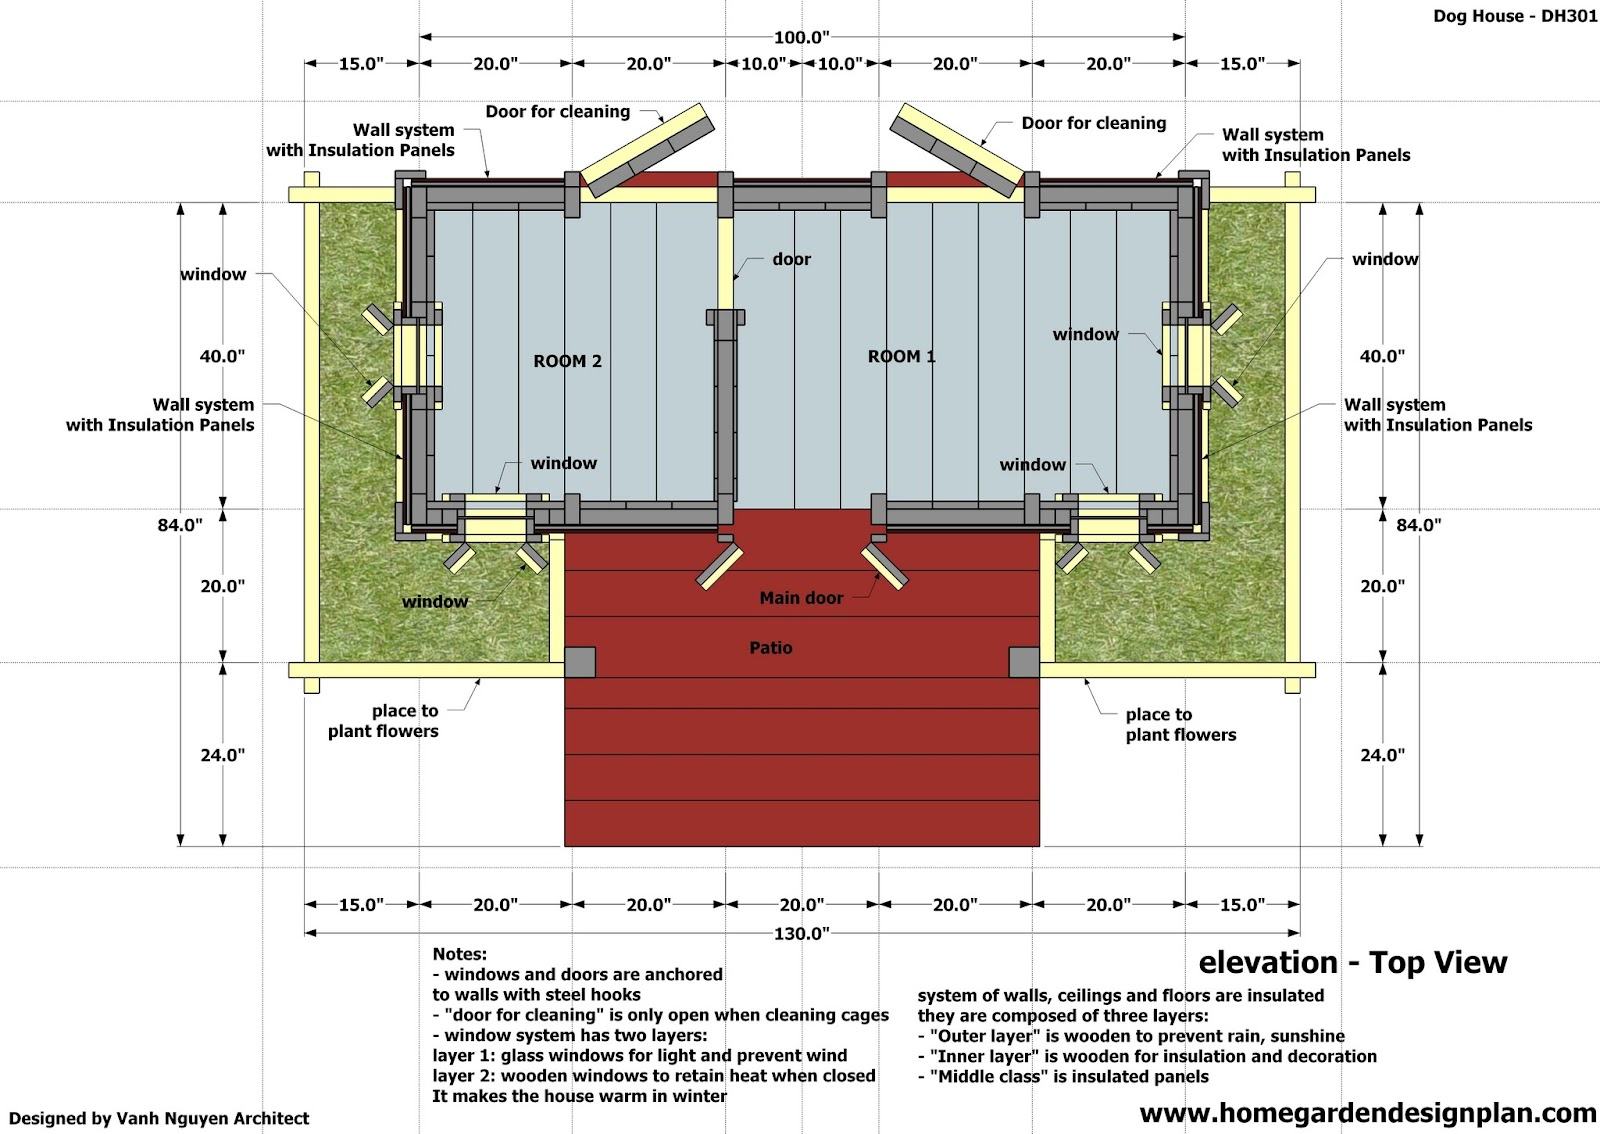 Home garden plans dh301 insulated dog house plans for Building a house layout